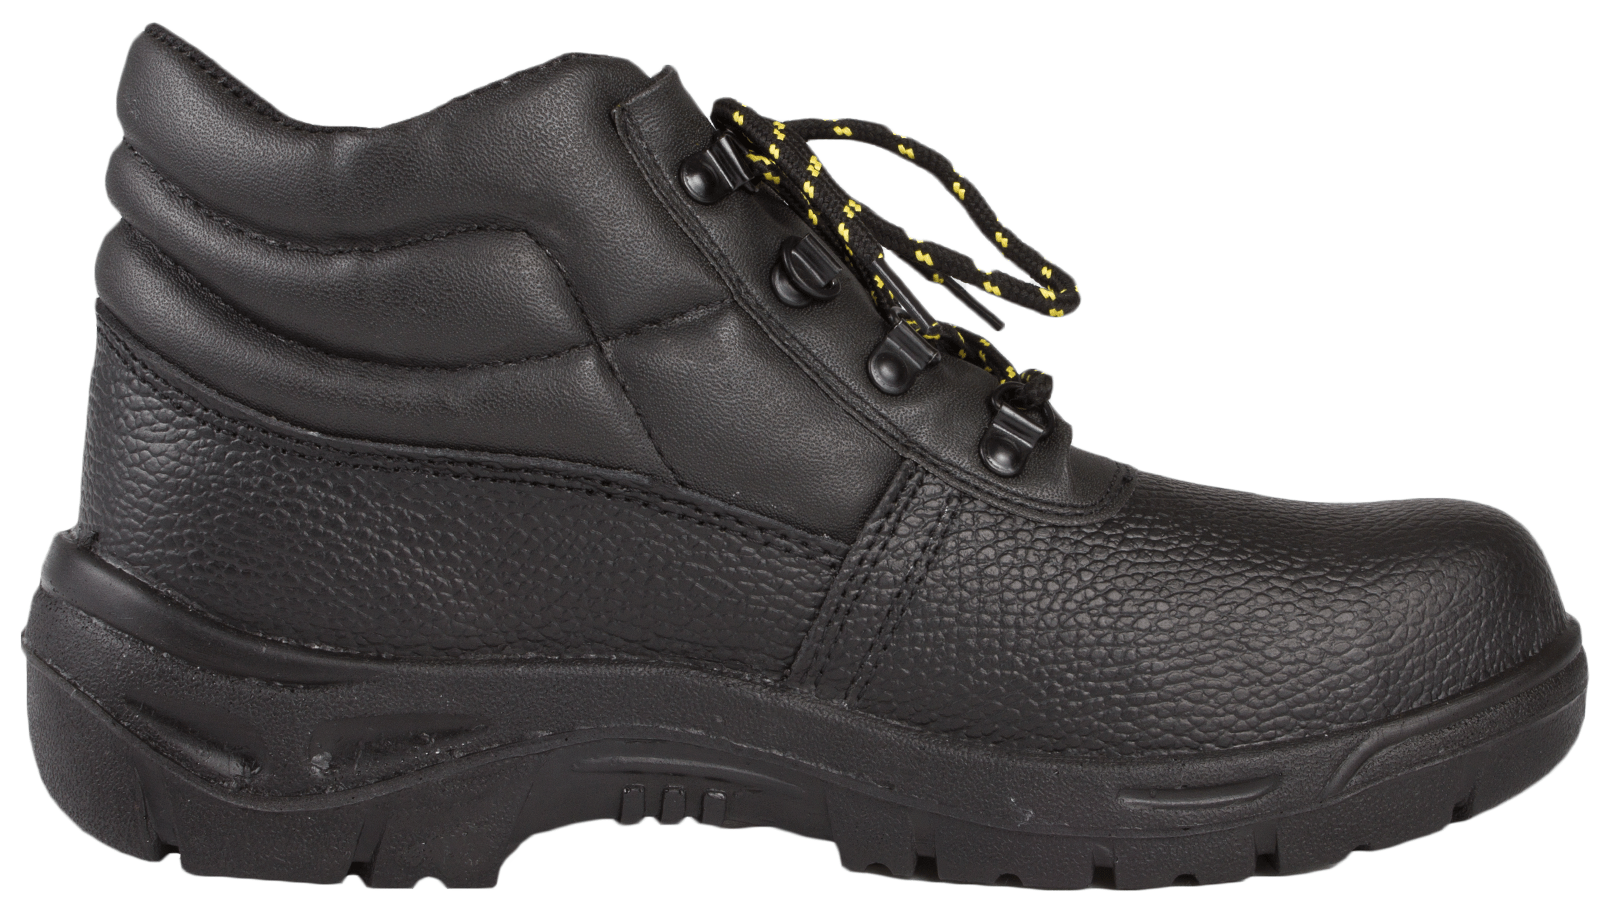 Mens Steel Toe Cap Safety Black Leather Ankle Boots Non